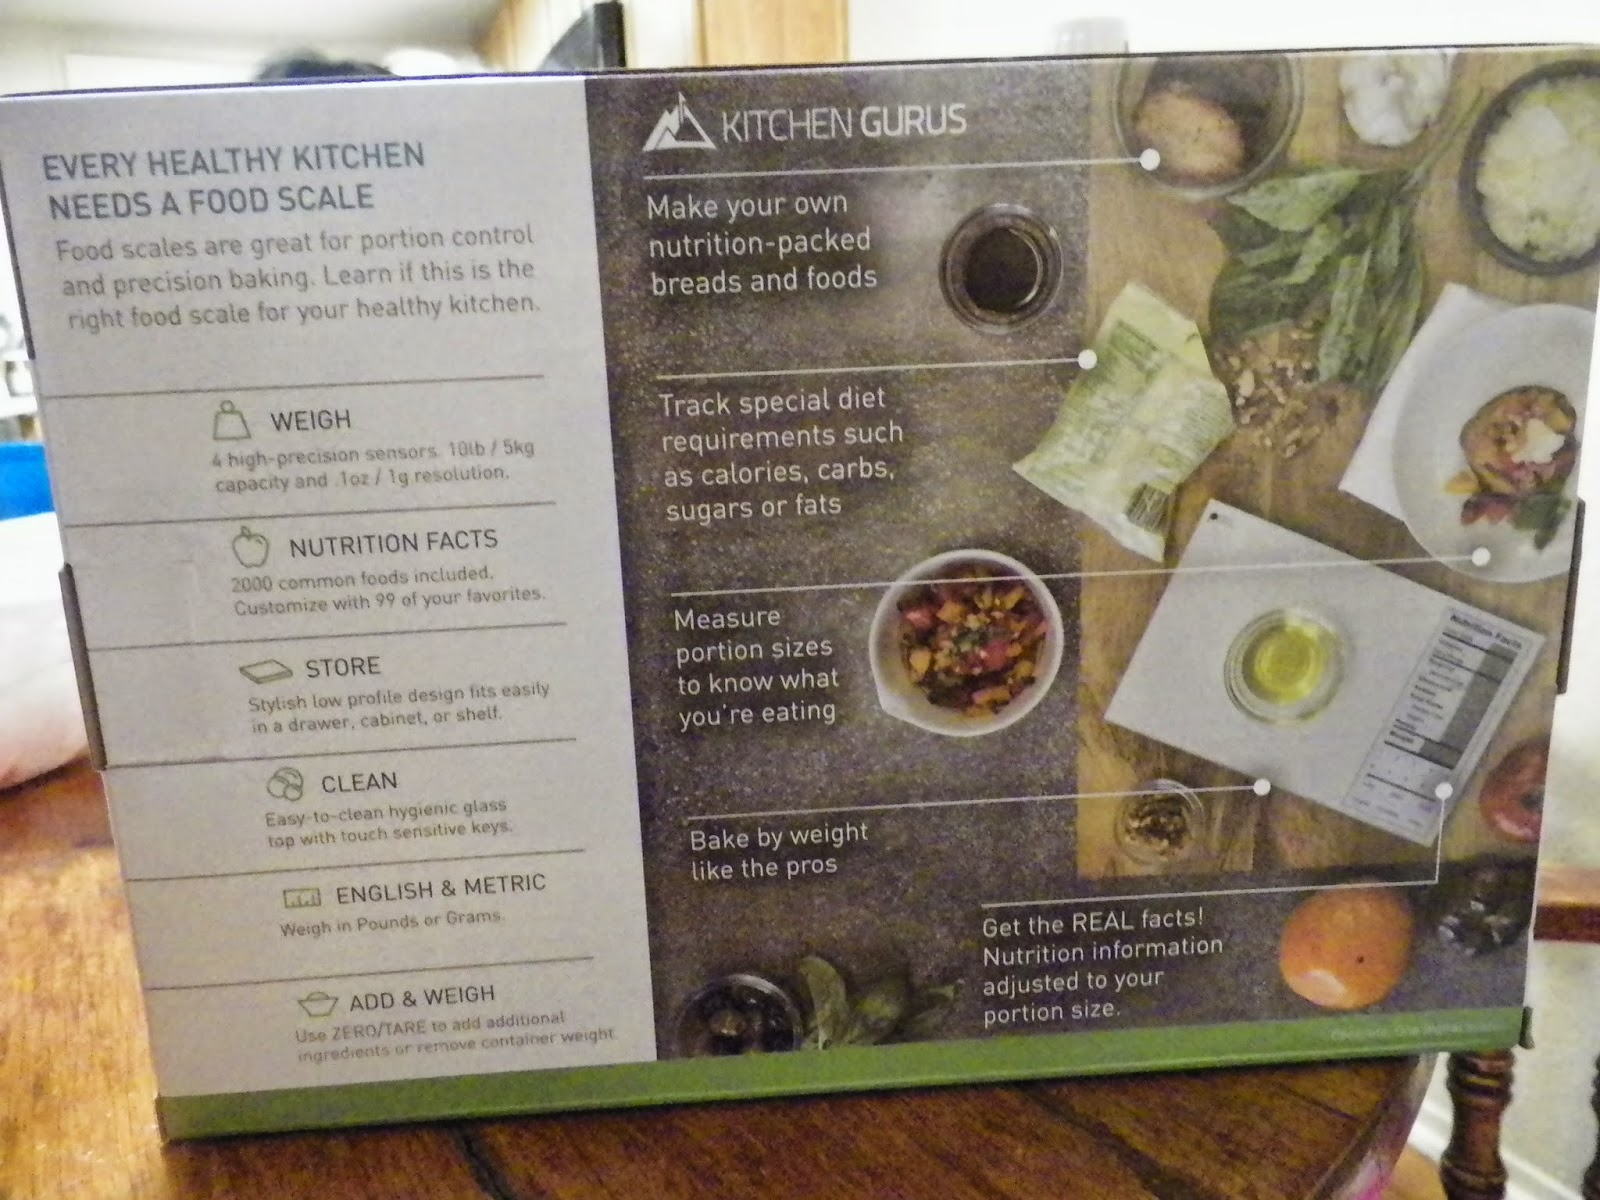 Perfect Portions Digital Scale Nutrition Facts Display By Kitchen Gurus Review